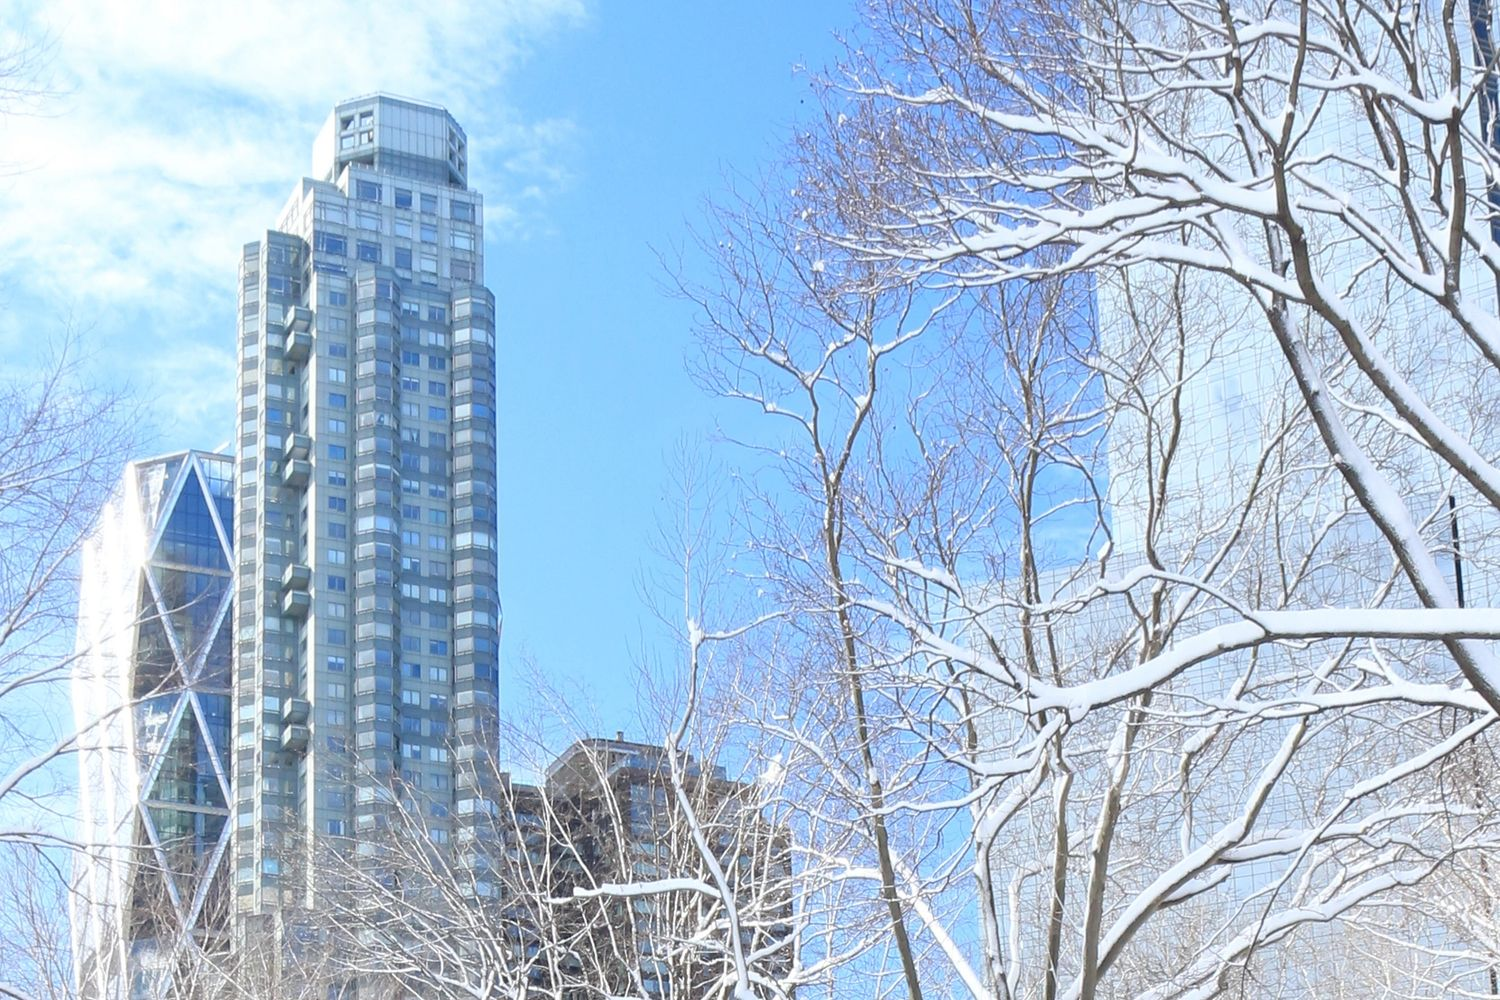 A view of the Columbus Circle skyscraper where  Atelier VGI's fine art photography is located.